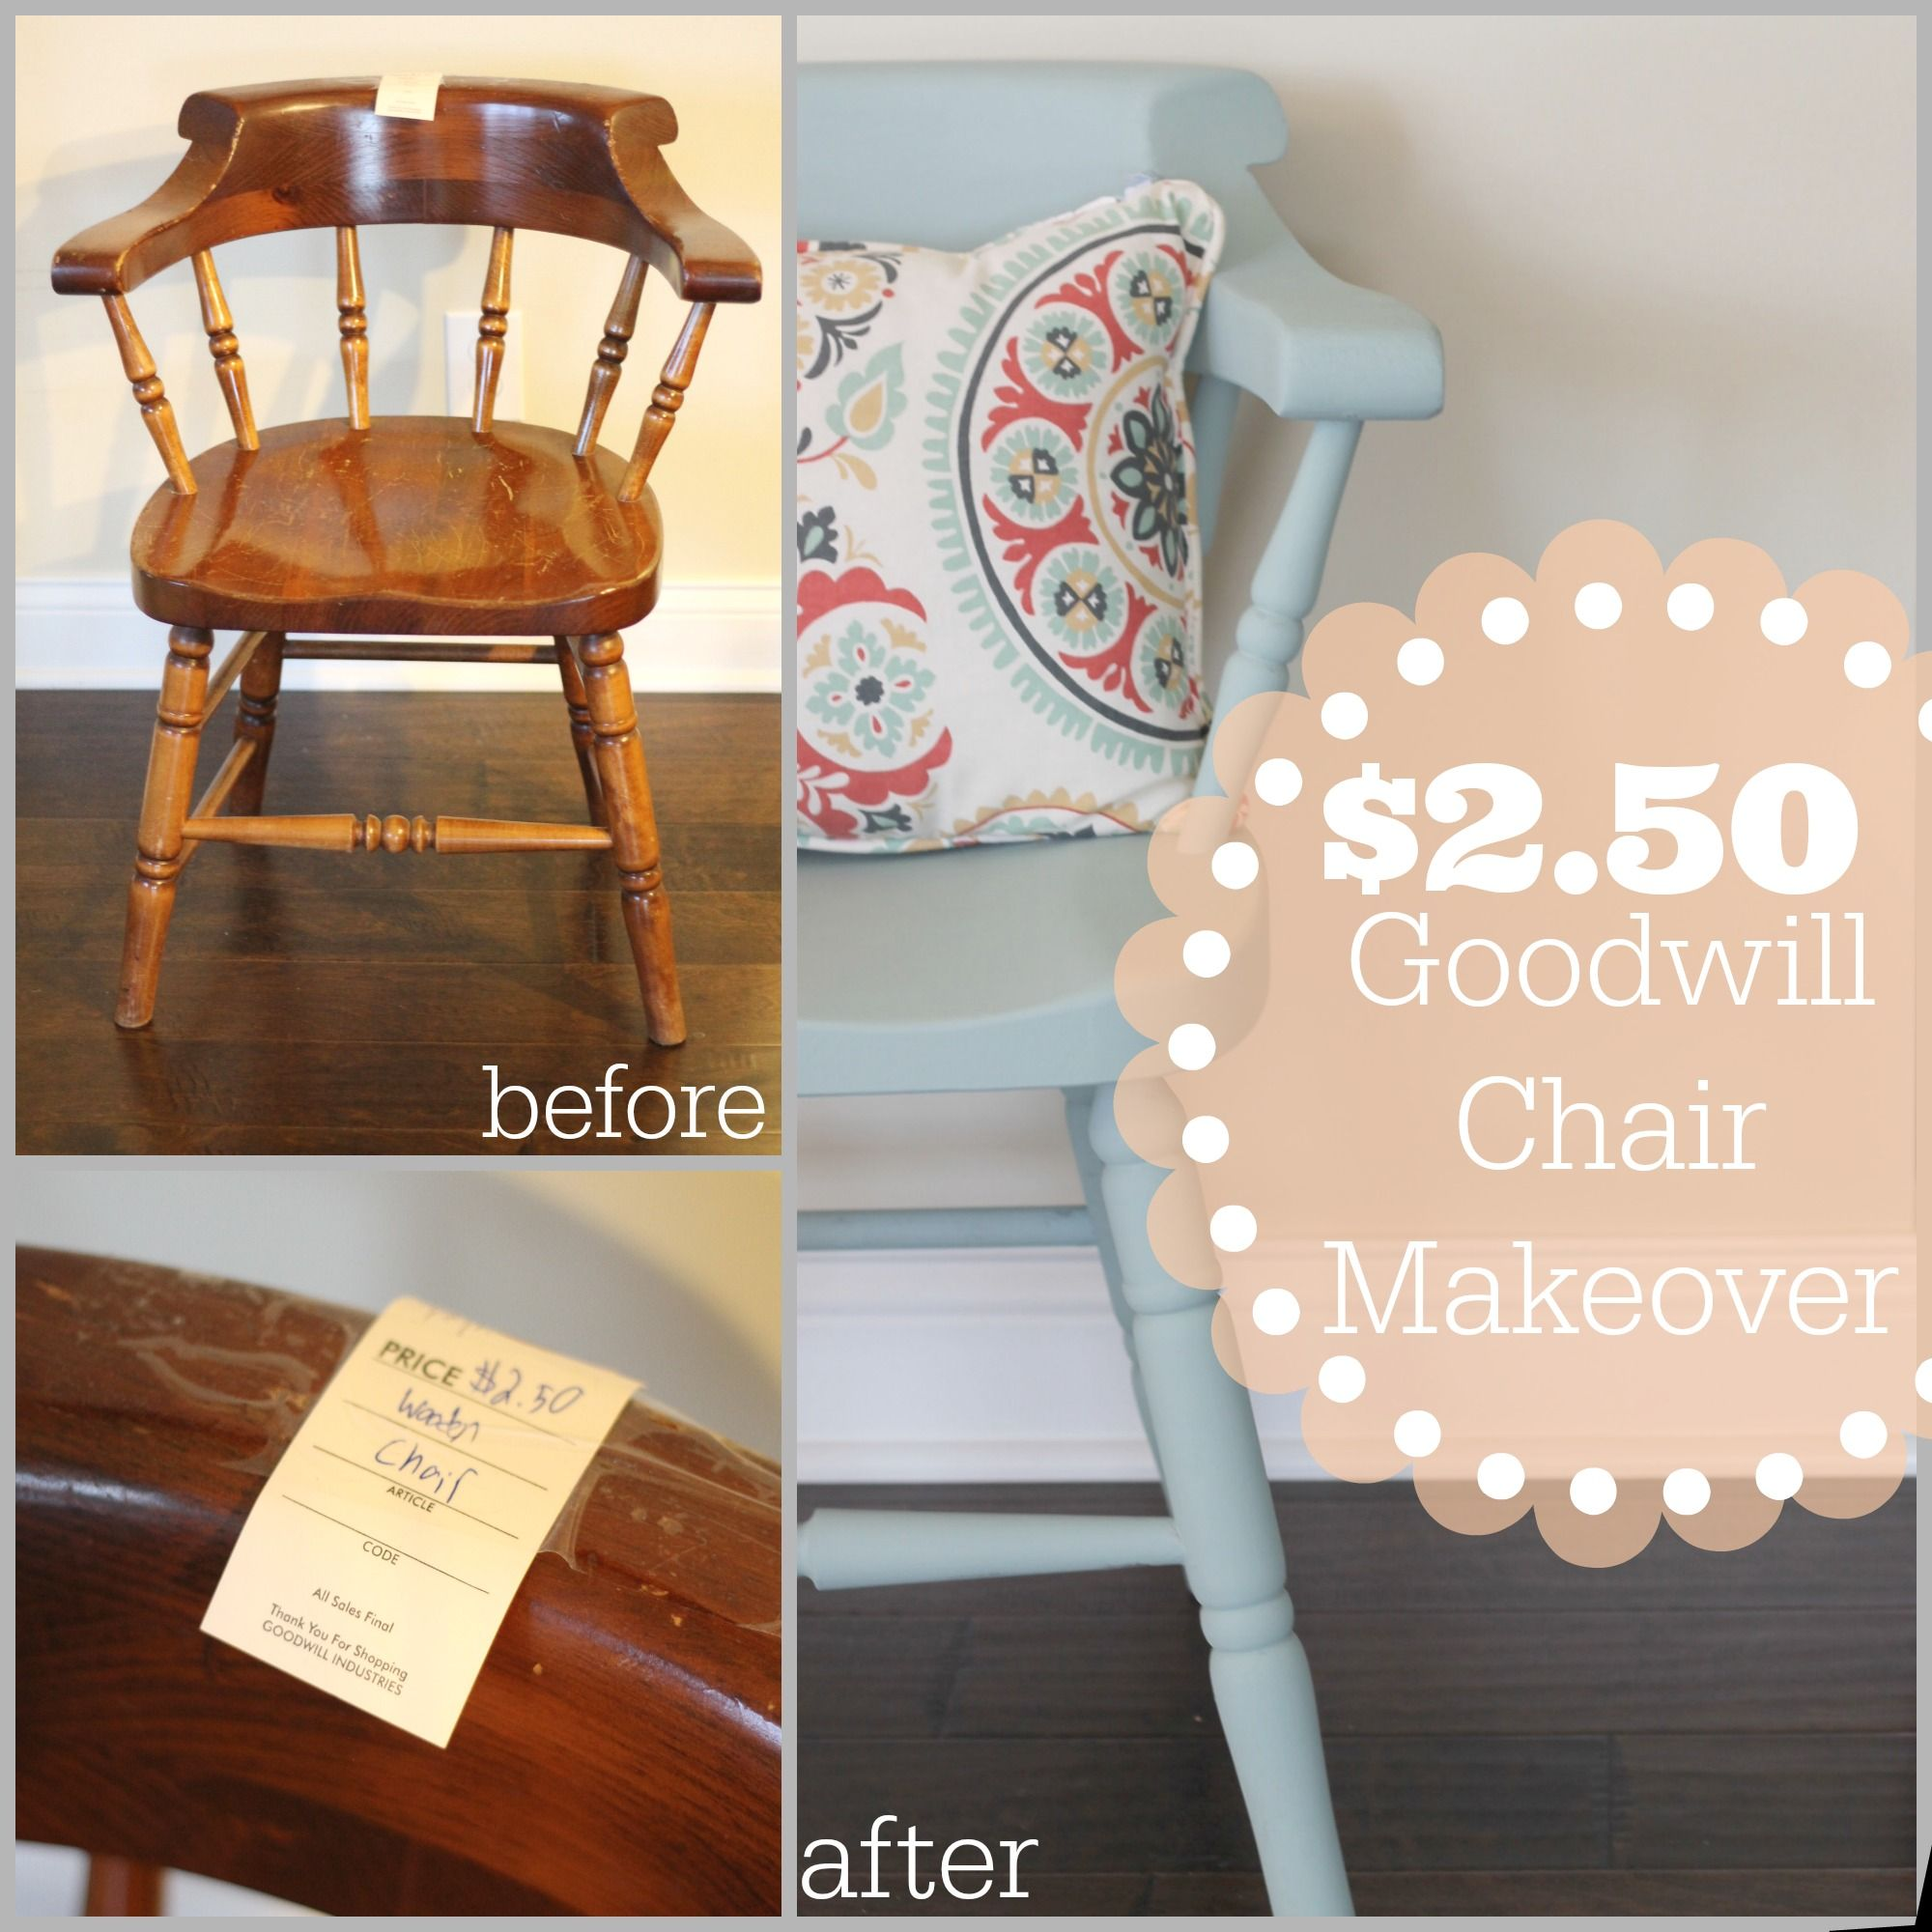 Does Goodwill Accept Sleeper Sofas Sofa E Colchoes Porangaba Chair Makeover Upcycle Recycle Furniture